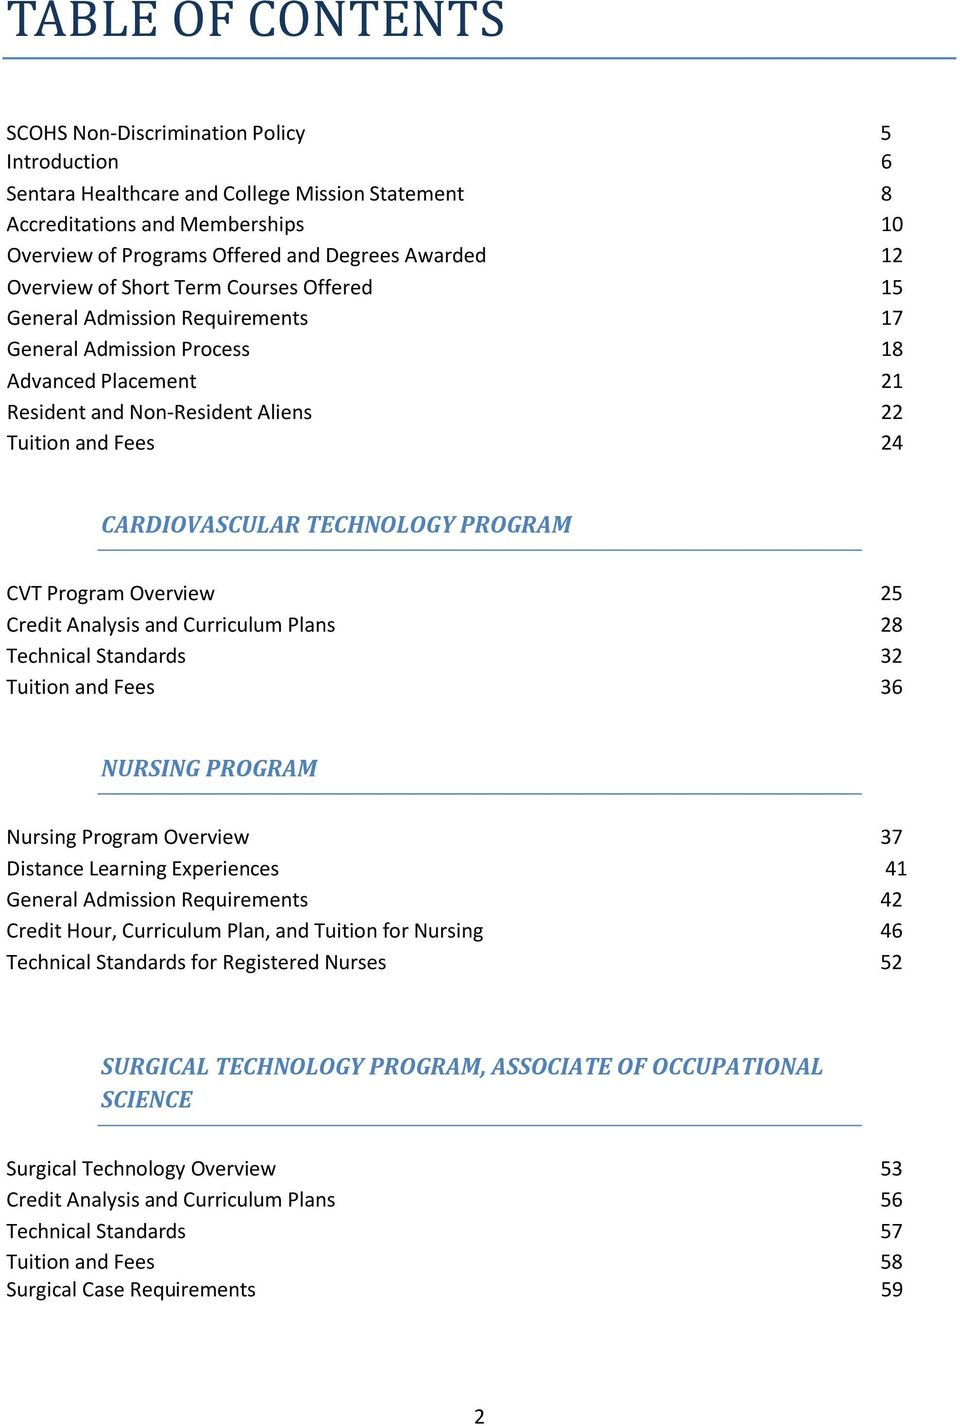 CARDIOVASCULAR TECHNOLOGY PROGRAM CVT Program Overview 25 Credit Analysis and Curriculum Plans 28 Technical Standards 32 Tuition and Fees 36 NURSING PROGRAM Nursing Program Overview 37 Distance